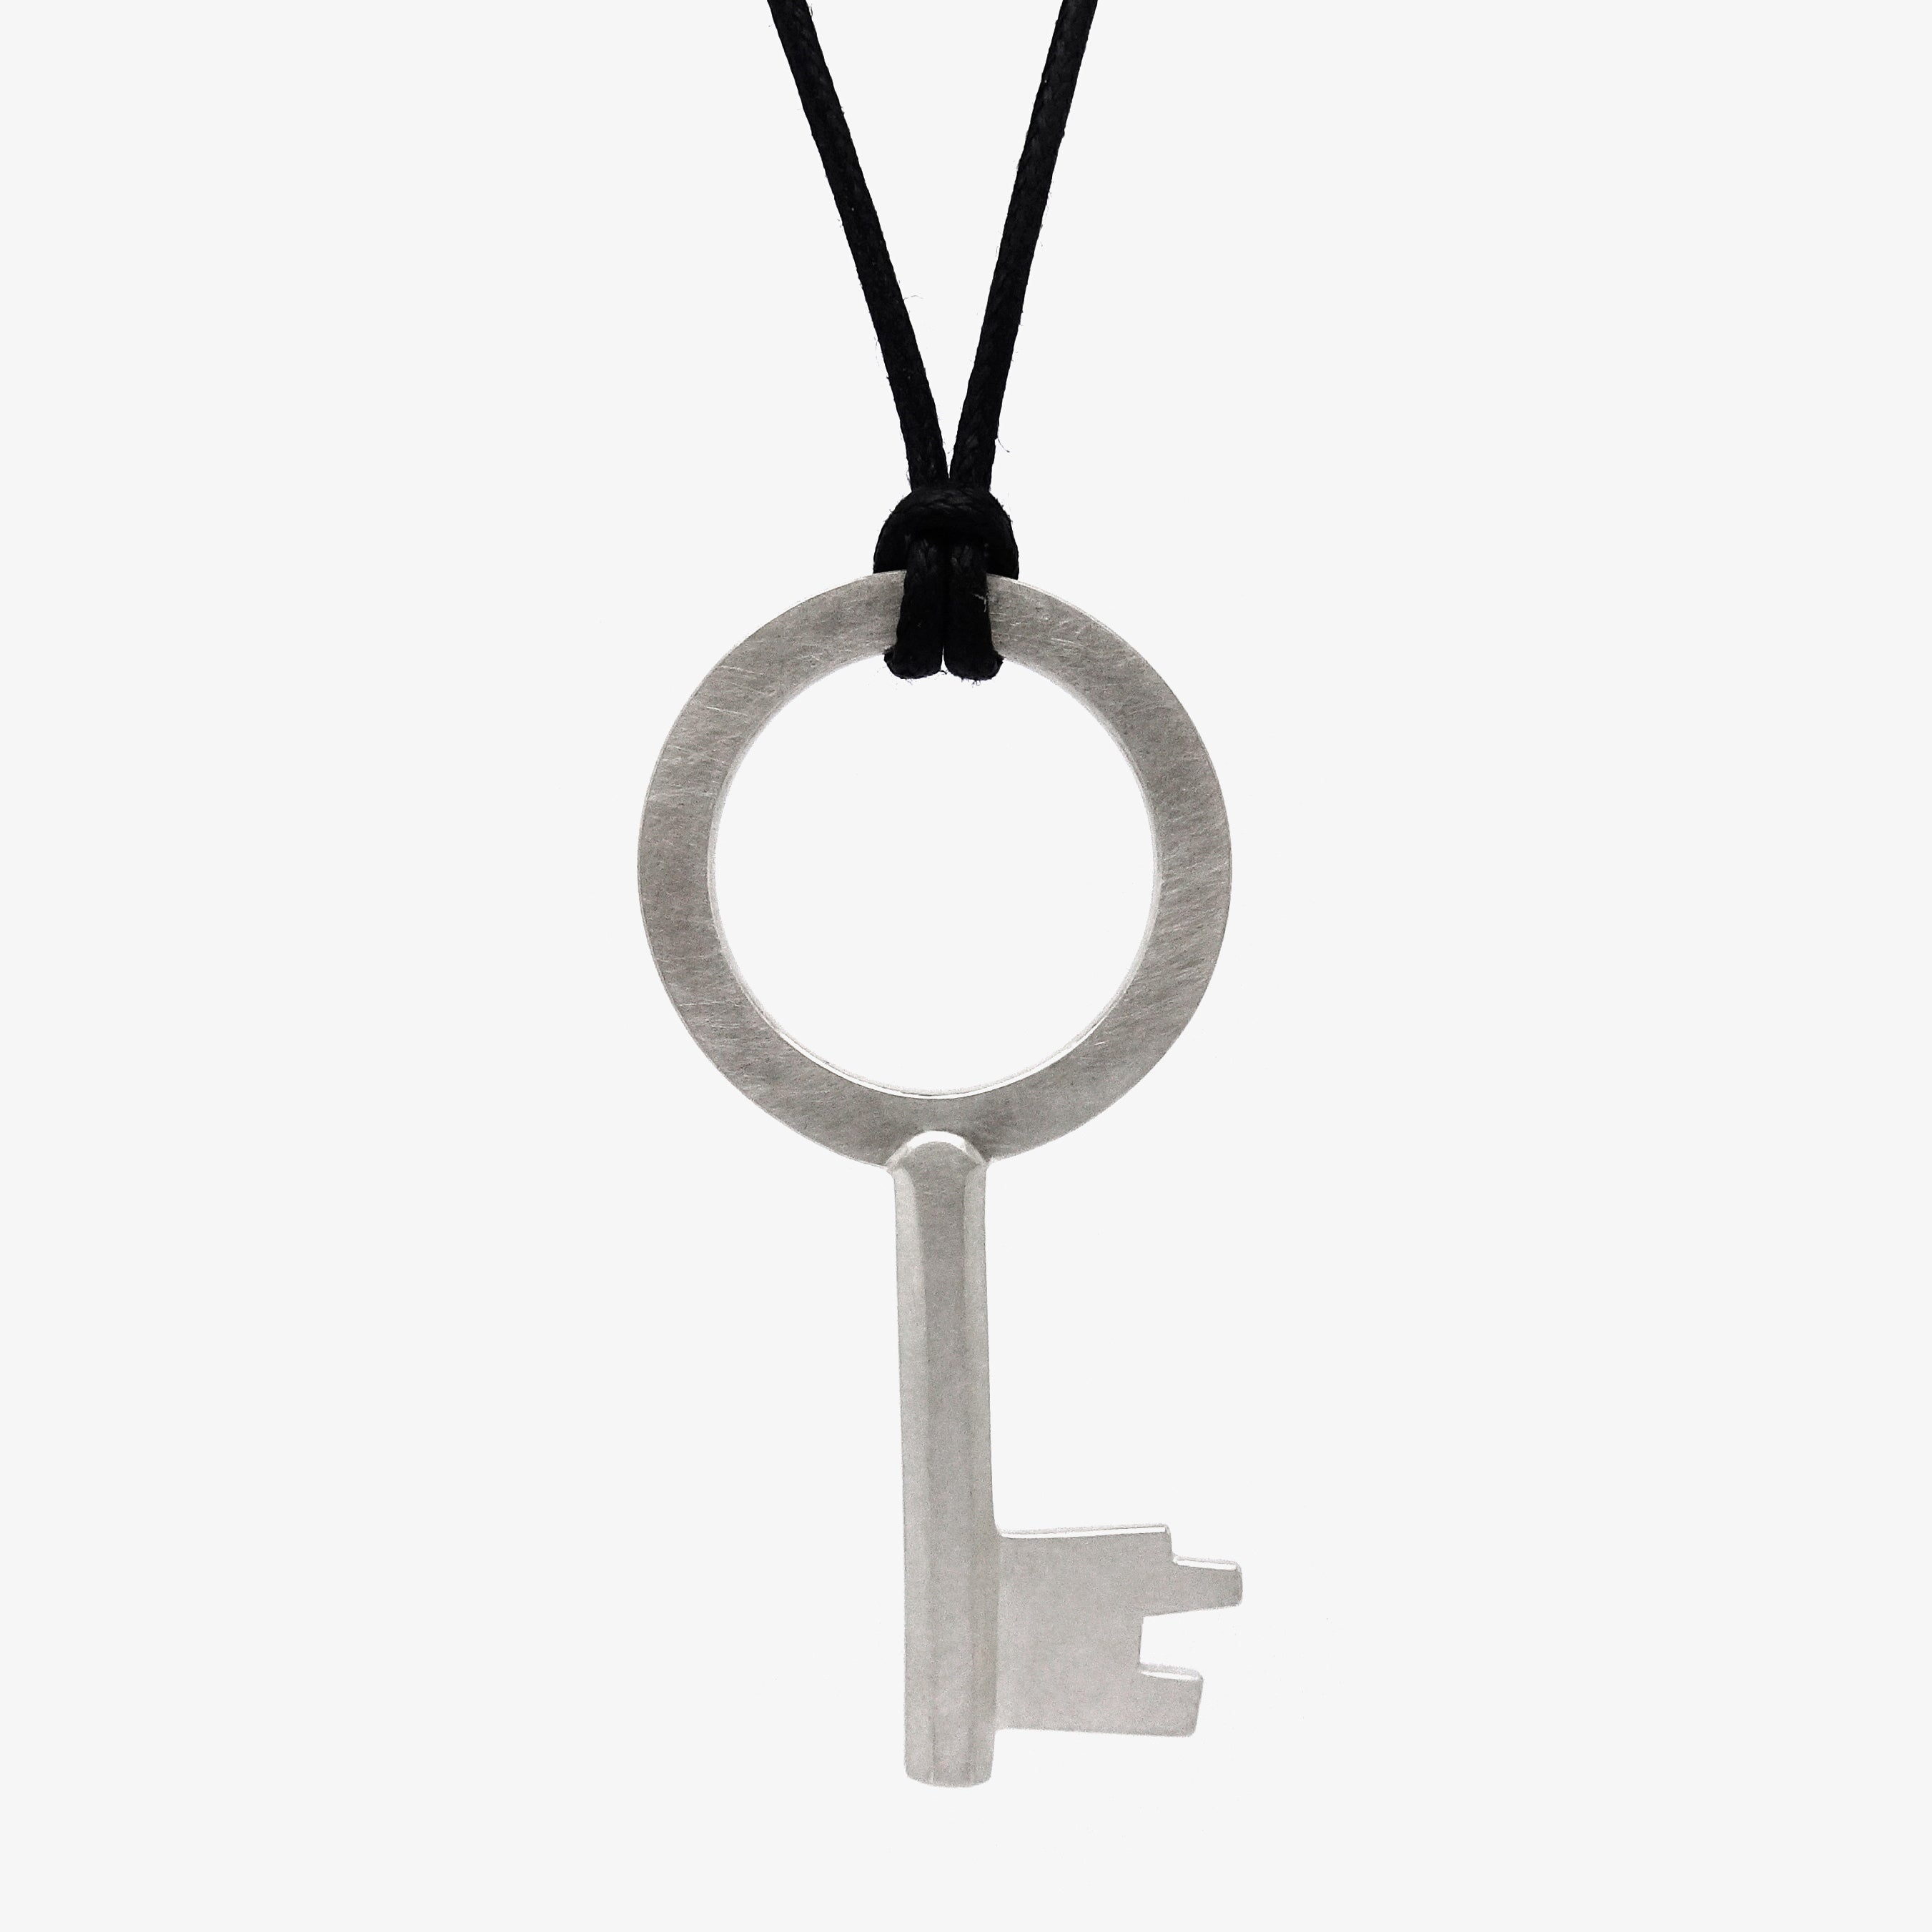 LARGE SILVER KEY PENDANT